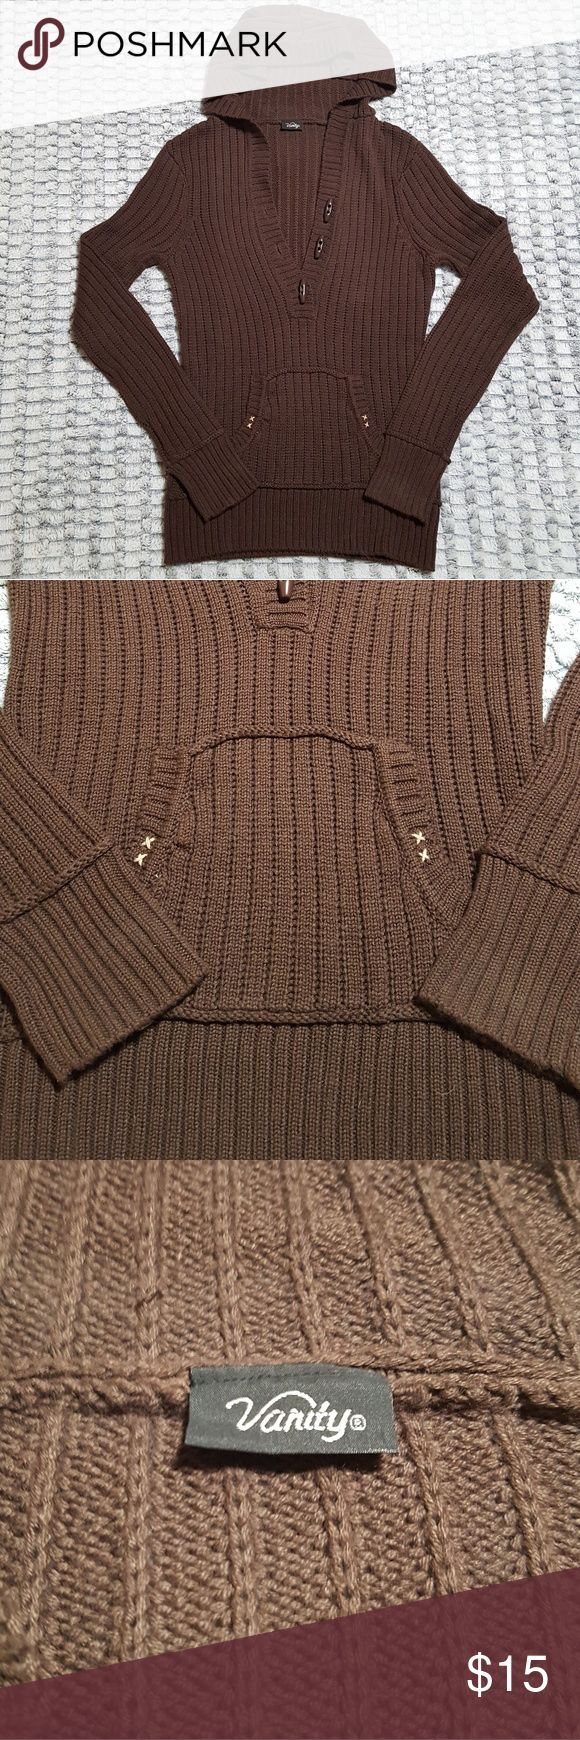 Vanity Hooded Sweater Vanity Hooded Sweater in Brown. Middle toggle button needs to be sewn back on. 55% Cotton 45% Acrylic. Price firm unless bundled. (See bundle discount) Vanity Sweaters V-Necks